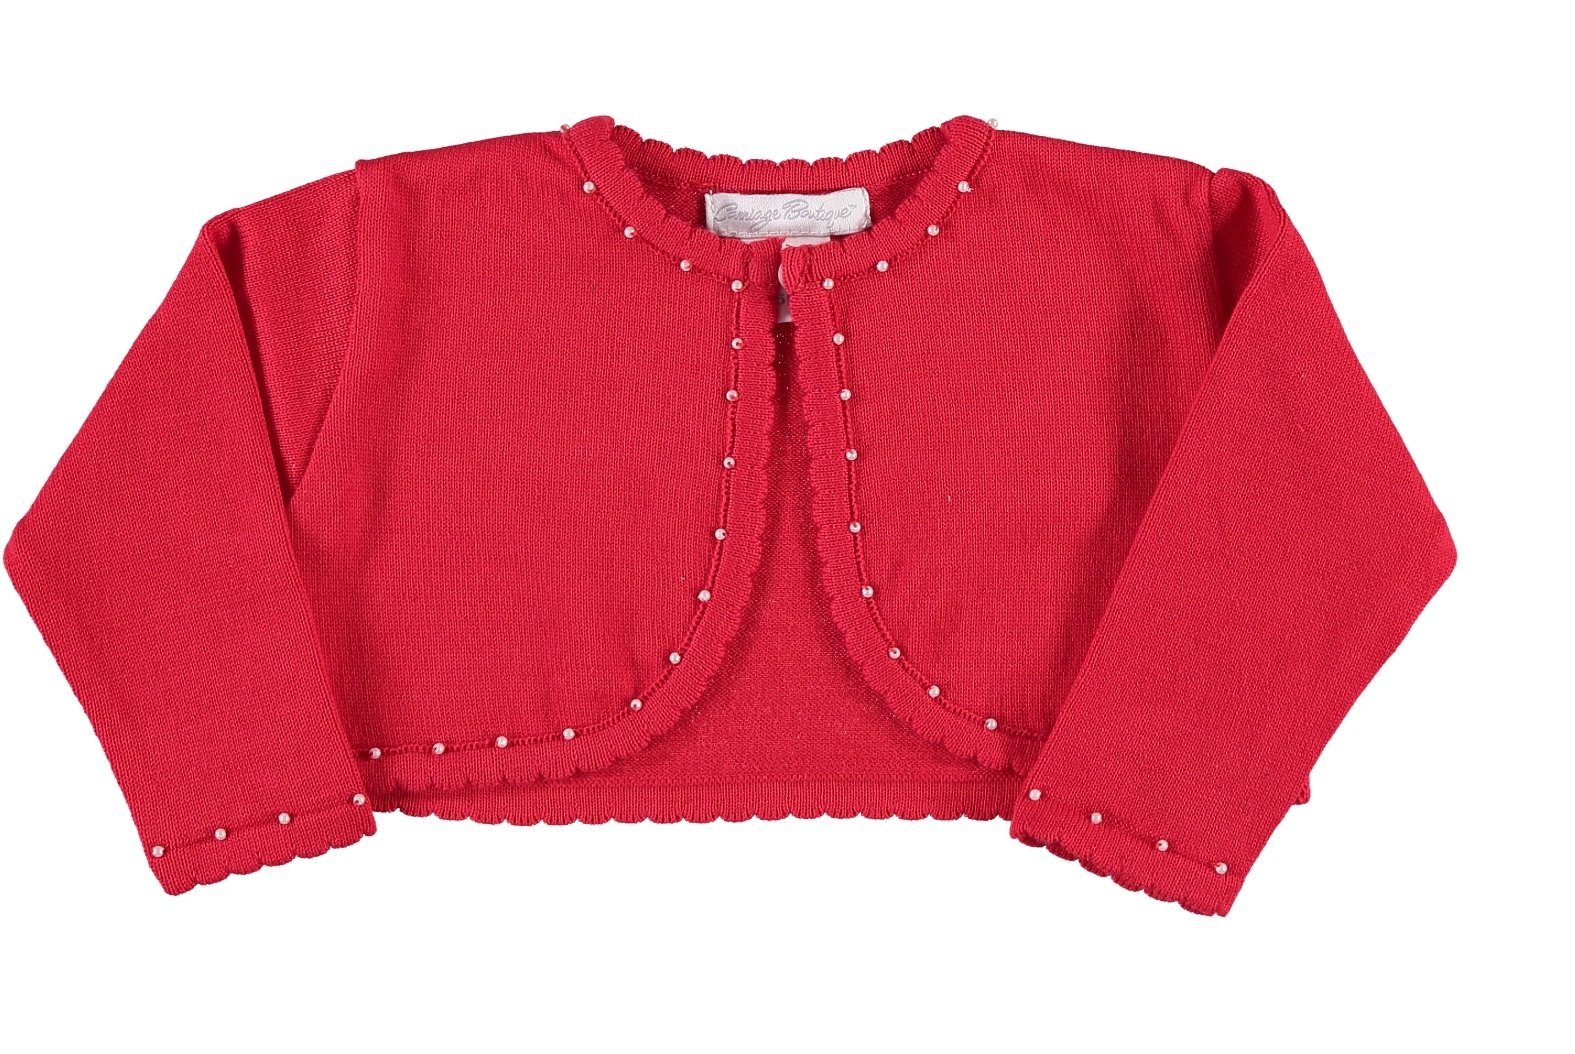 Carriage Boutique Girl's Holiday Red Bolero with Pearls (8Y) by Carriage Boutique